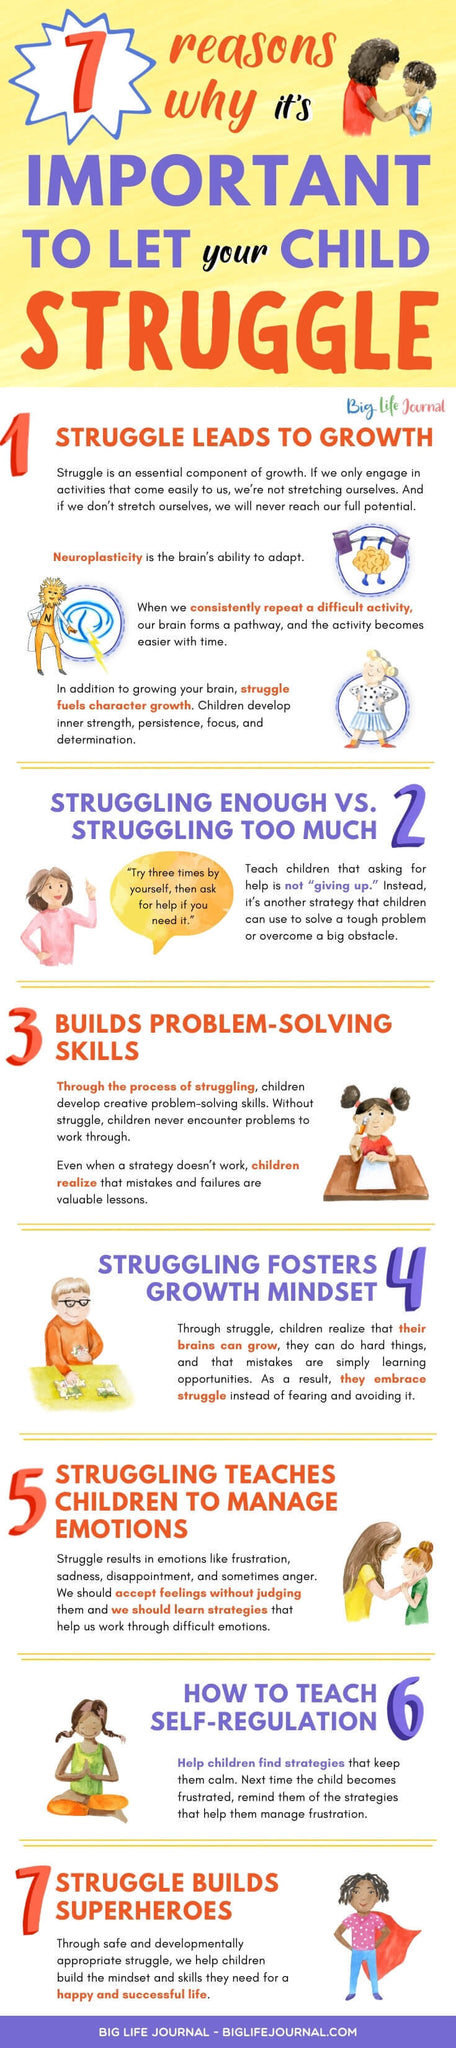 7 Reasons Why it's Important to Let Your Child Struggle